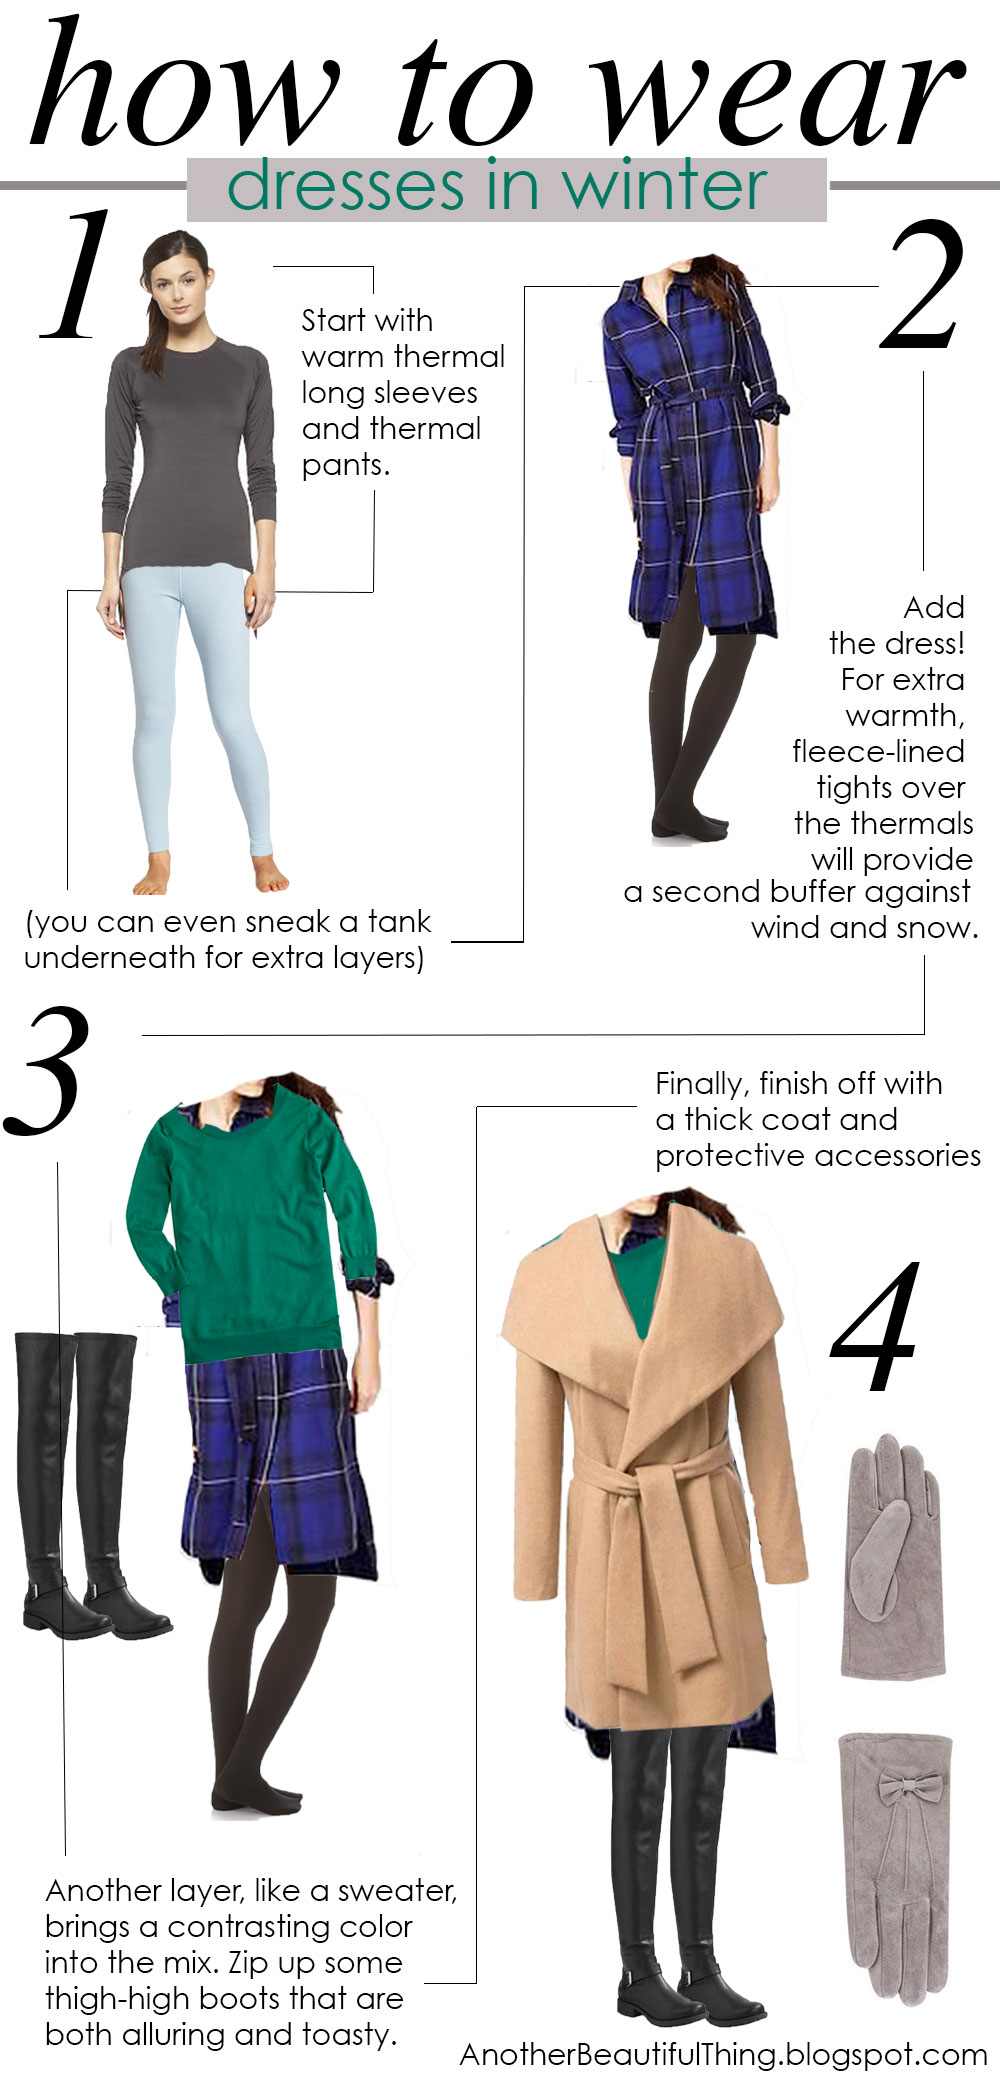 How to wear dresses in the winter time and layer dresses for cold weather